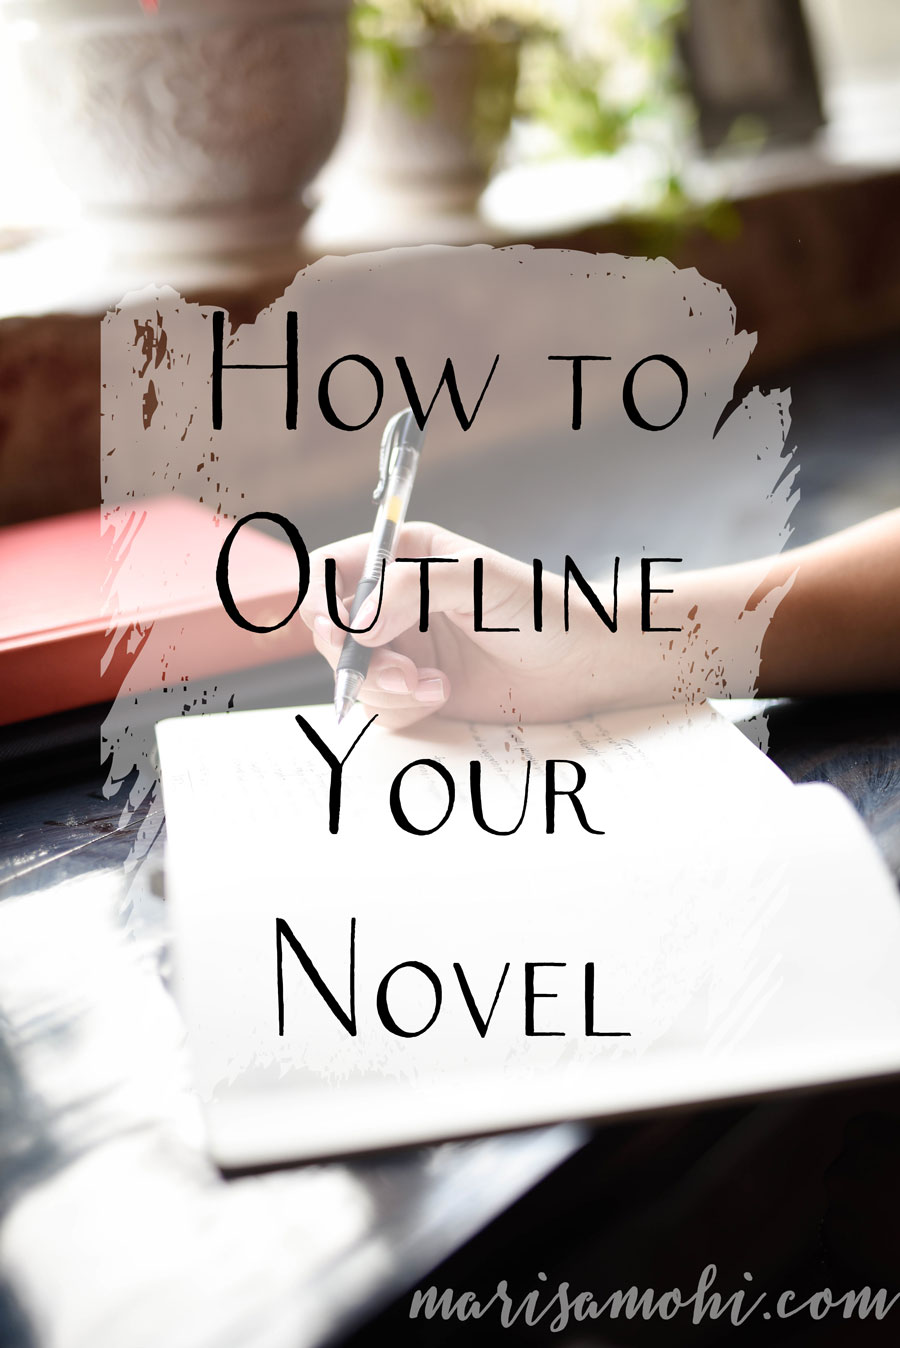 How to Outline Your Novel